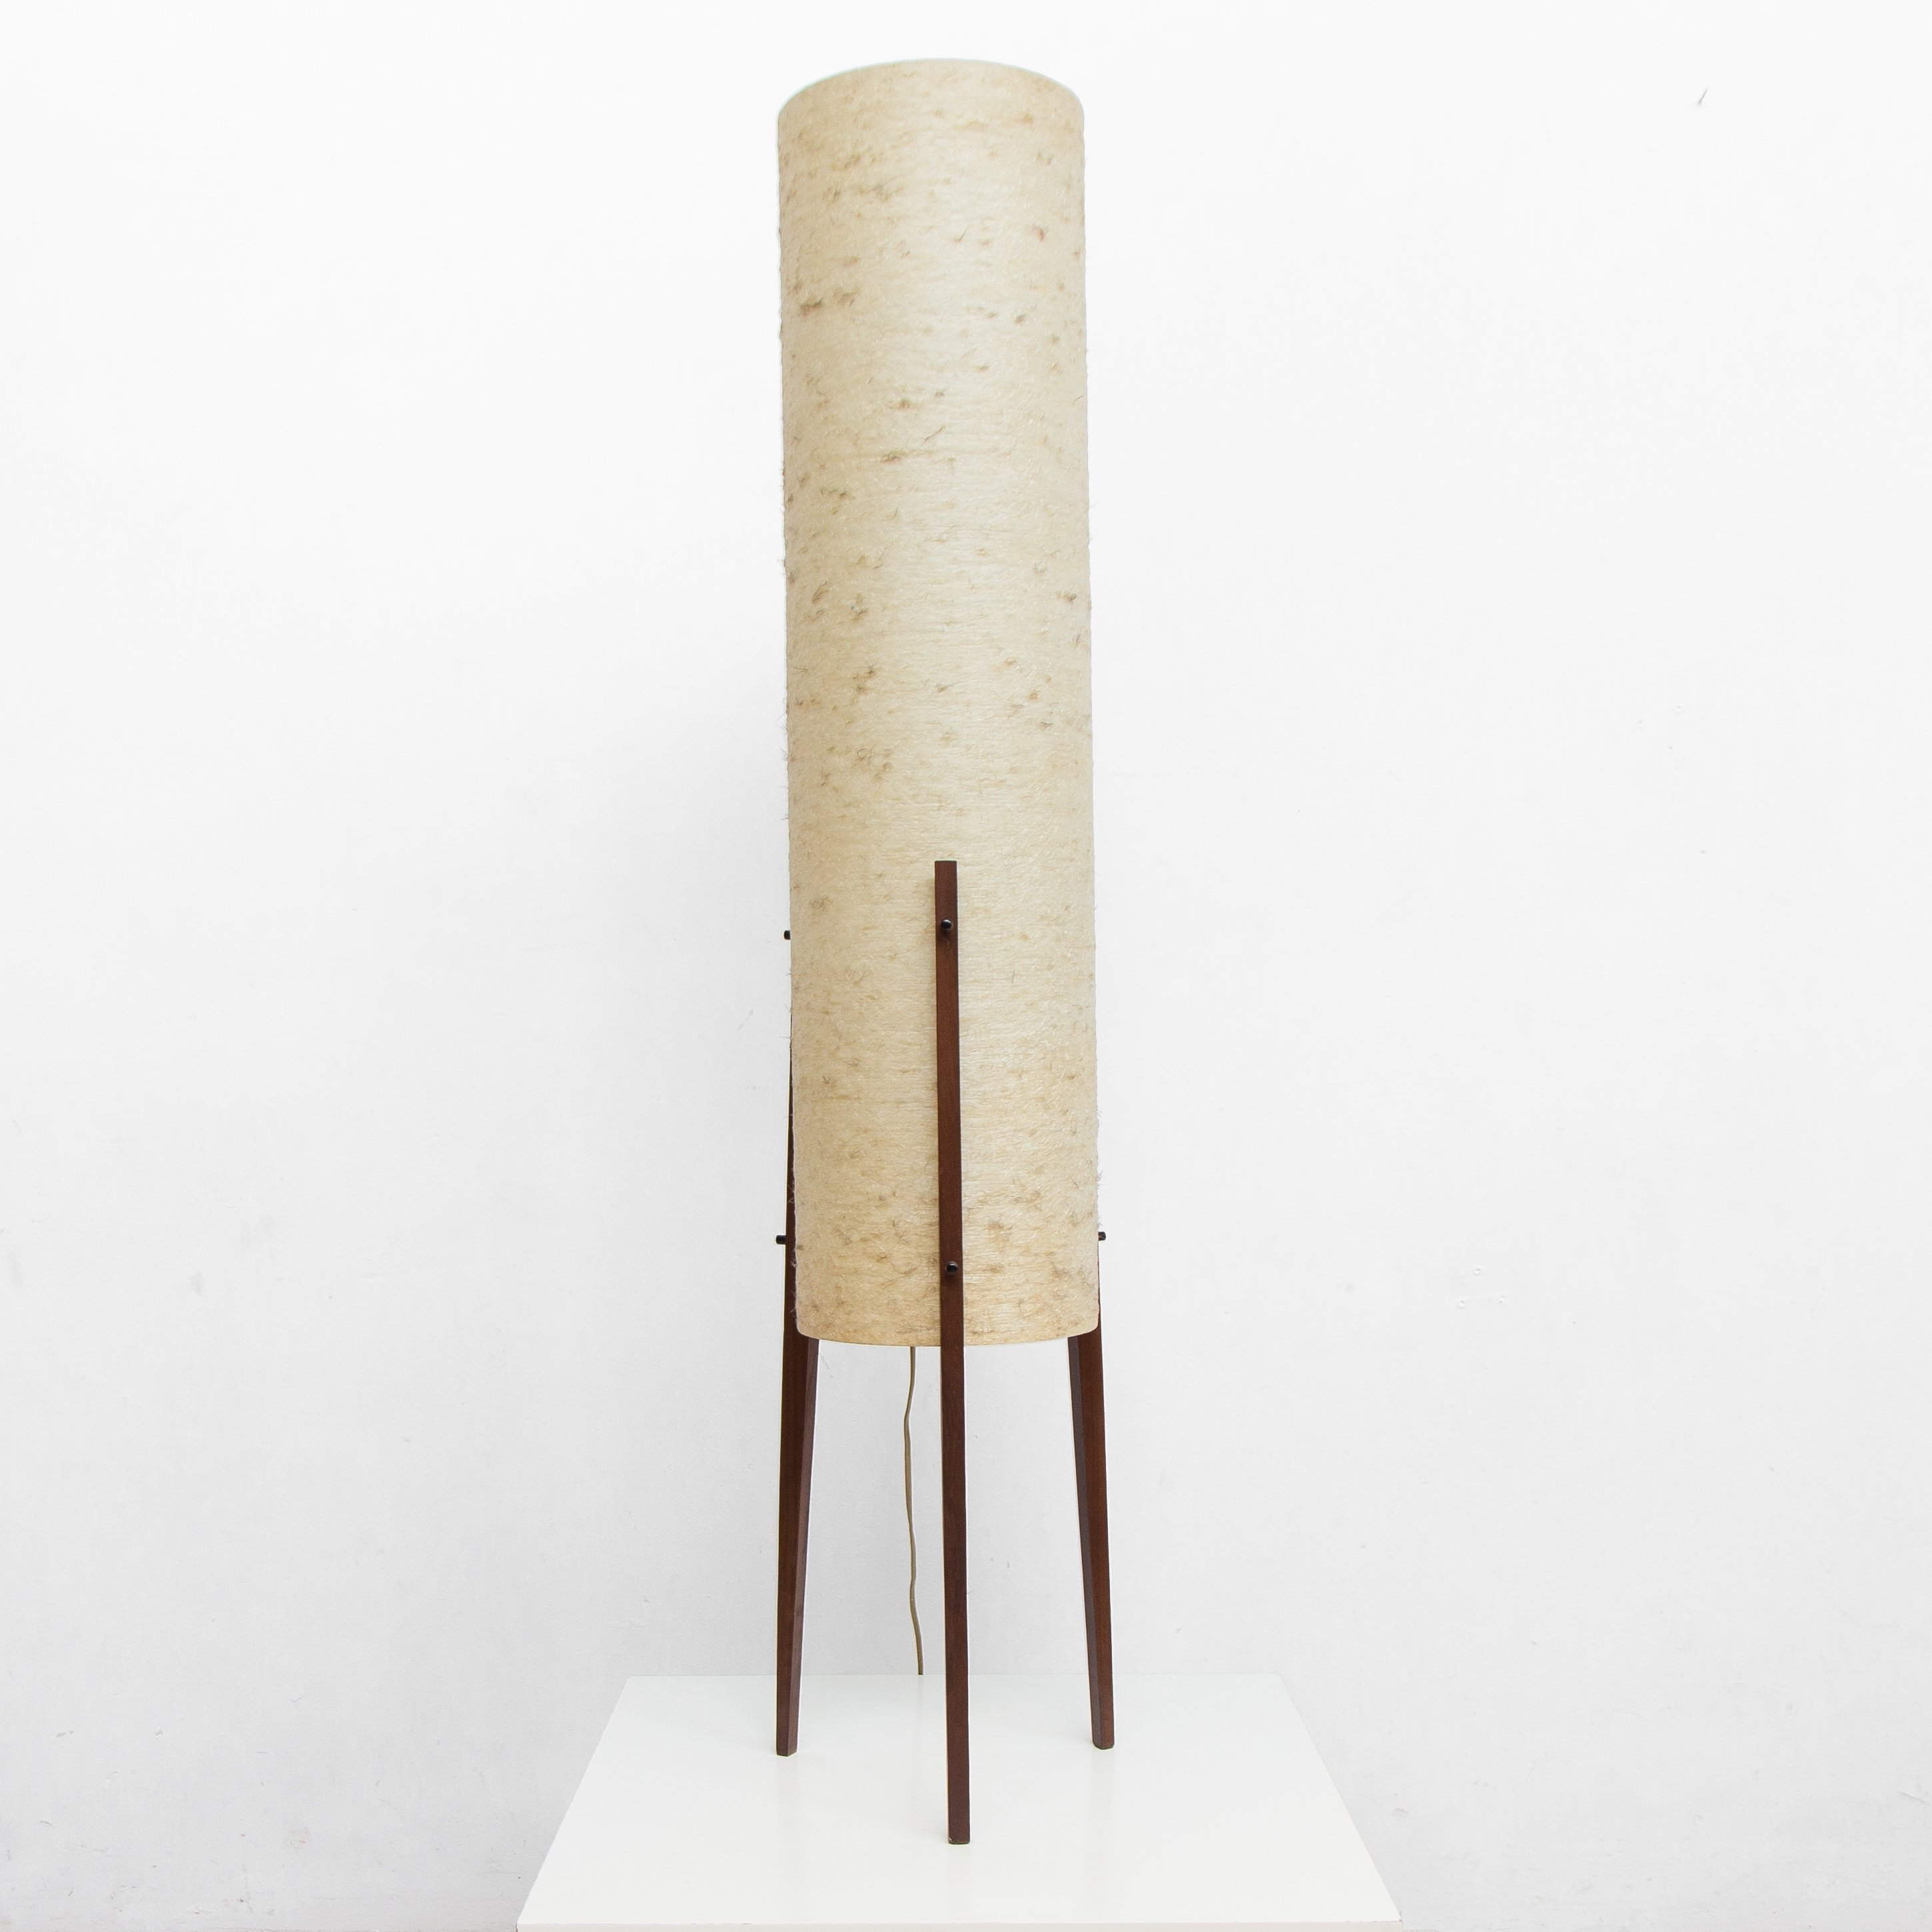 Wooden floor lamp with high cylindrical cream shade 1950s 84693 wooden floor lamp with high cylindrical cream shade 1950s aloadofball Gallery